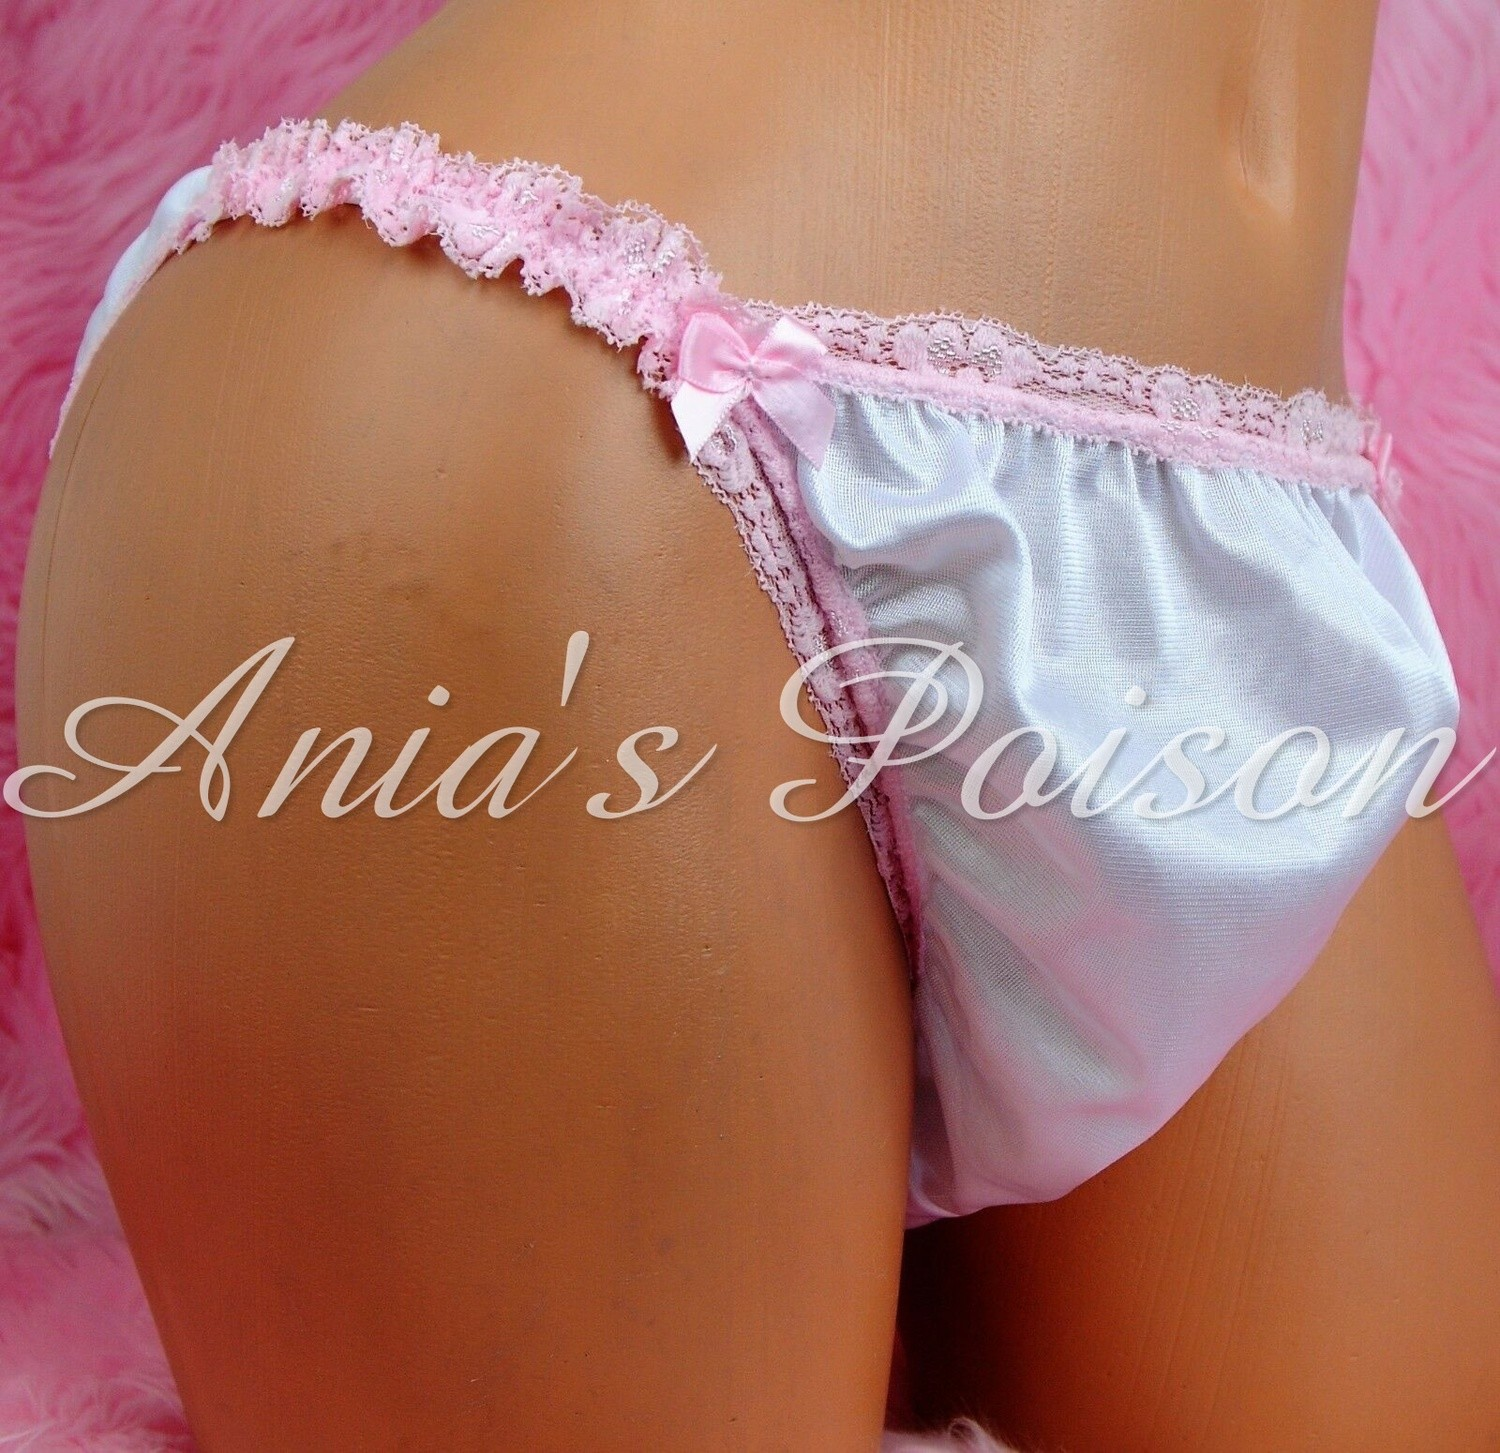 Sissy Men's Antron Nylon Silky Smooth pink lace trim bridal Maid string bikini panties